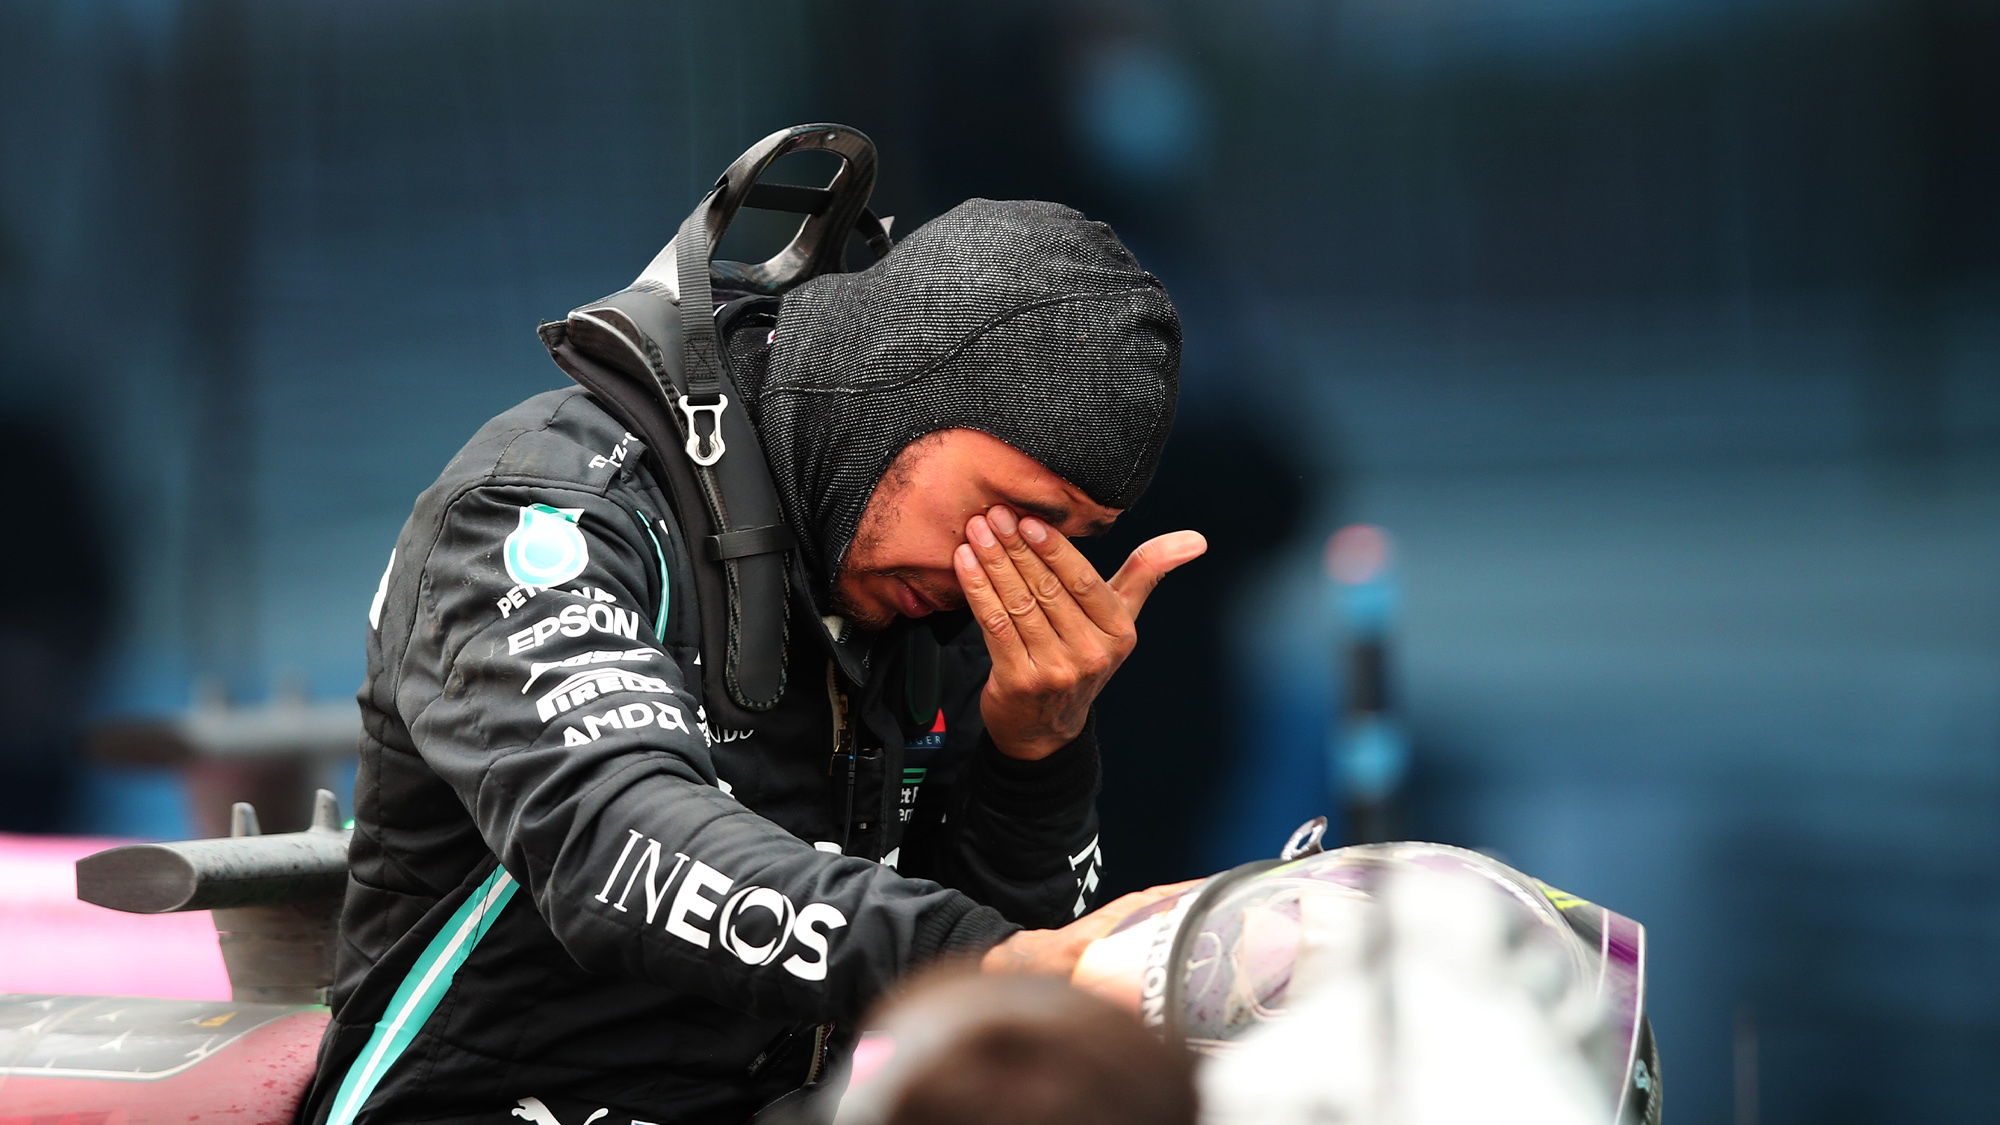 An emotional Lewis Hamilton wipes his eyes after winning the 2020 f1 Turkish Grand Prix